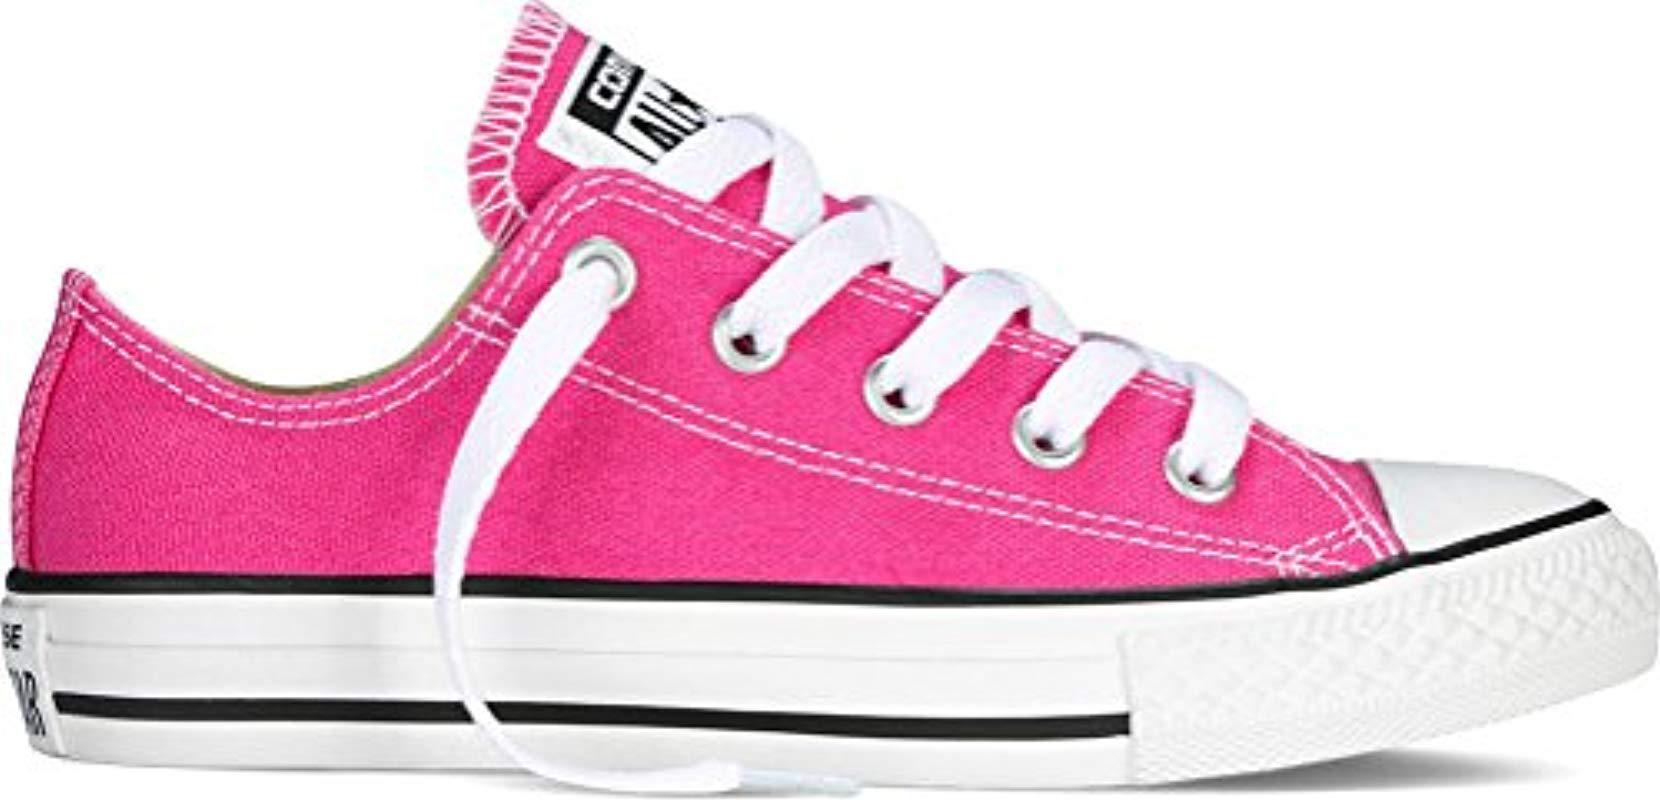 Lyst - Converse Chuck Taylor All Star Seasonal Colors Ox in Pink 45d7698aa